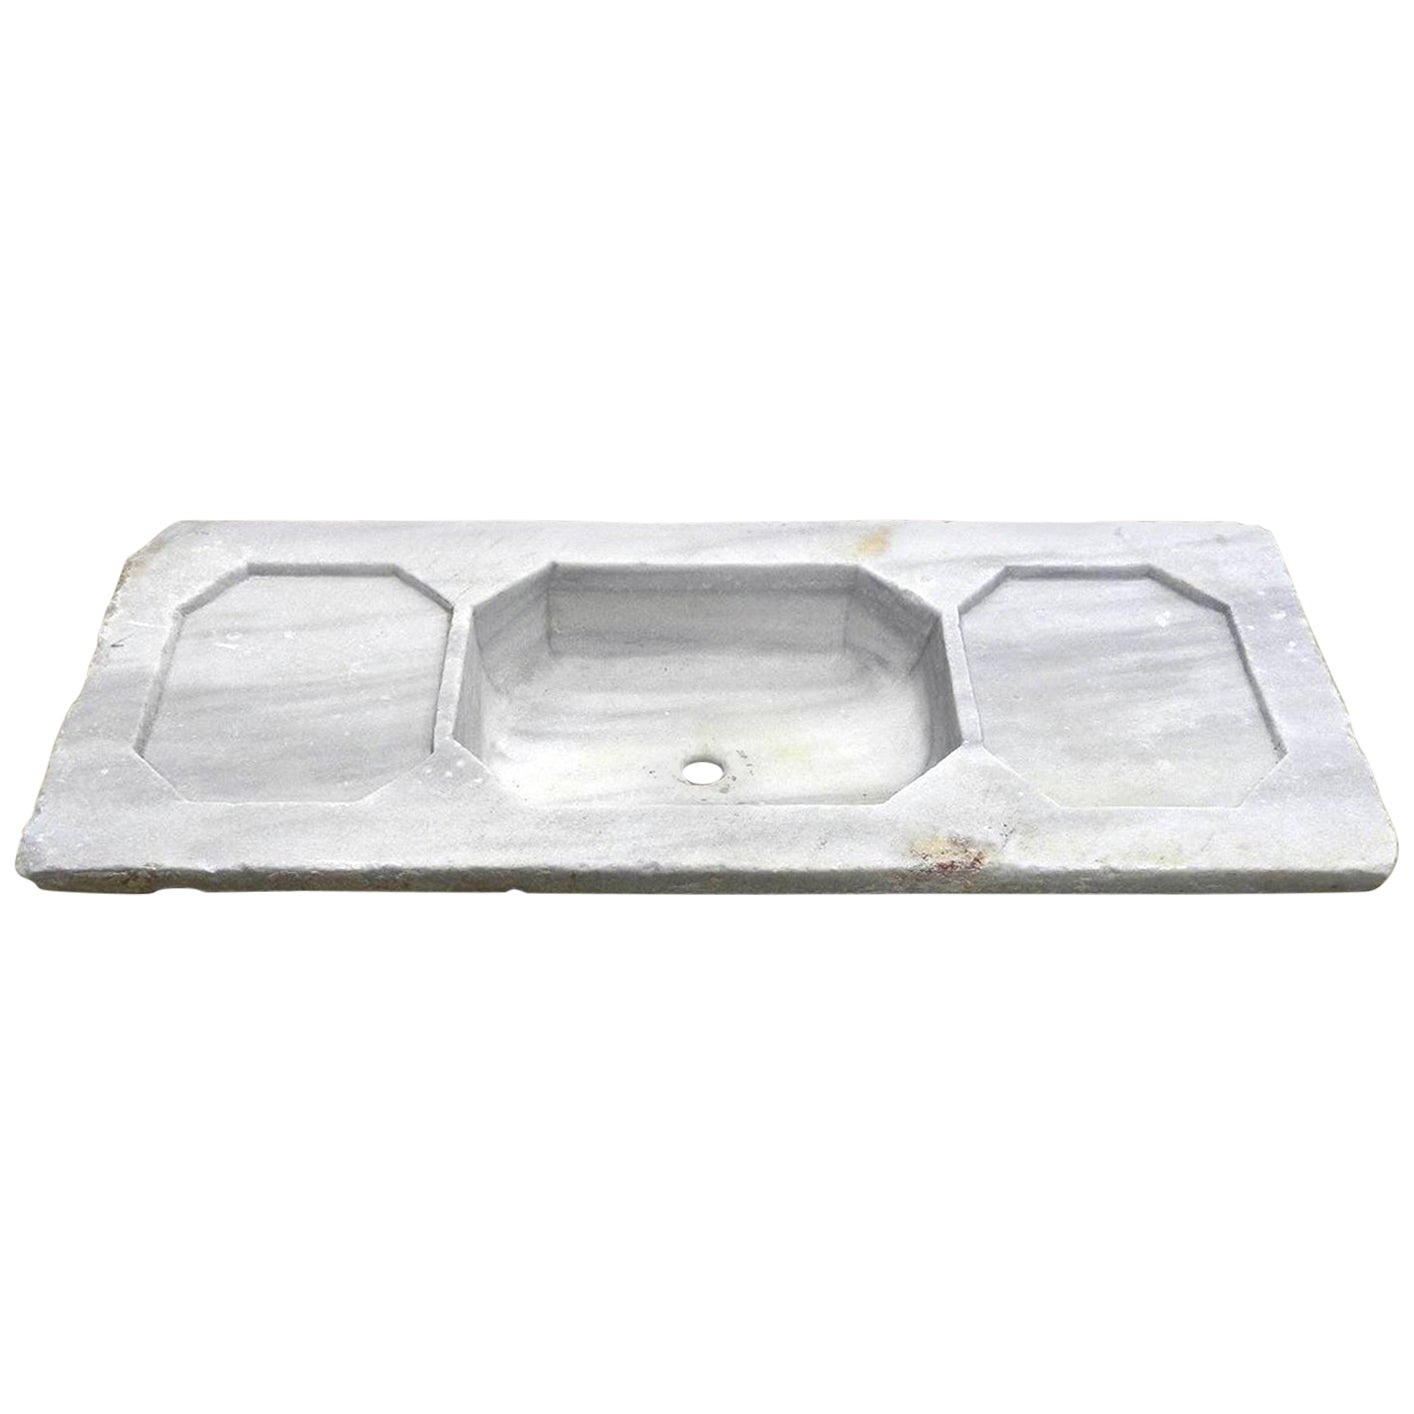 Classical Marble Stone Sink Basin